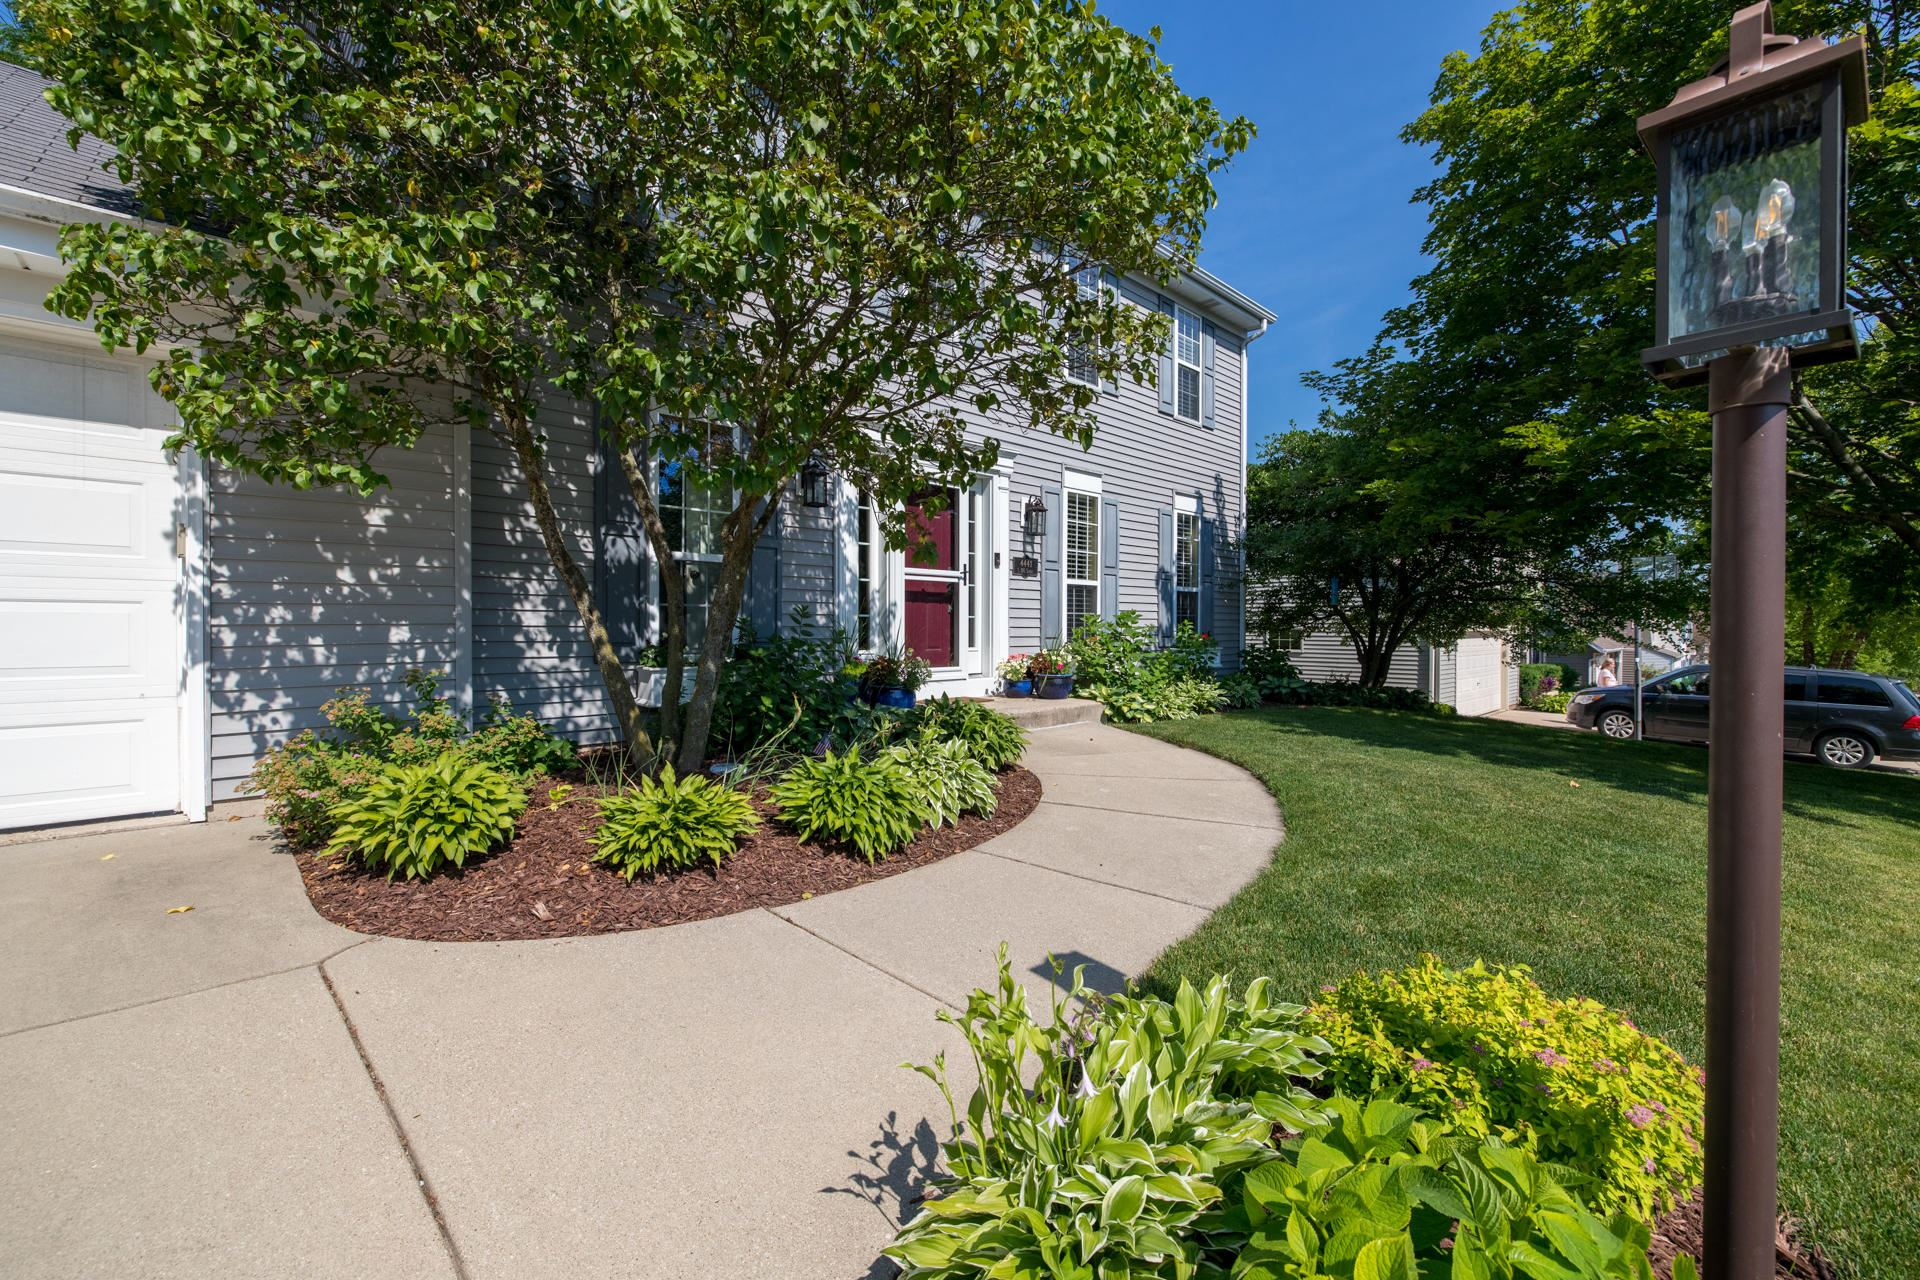 4441 S 116th St, Greenfield, WI 53228 - #: 1697258